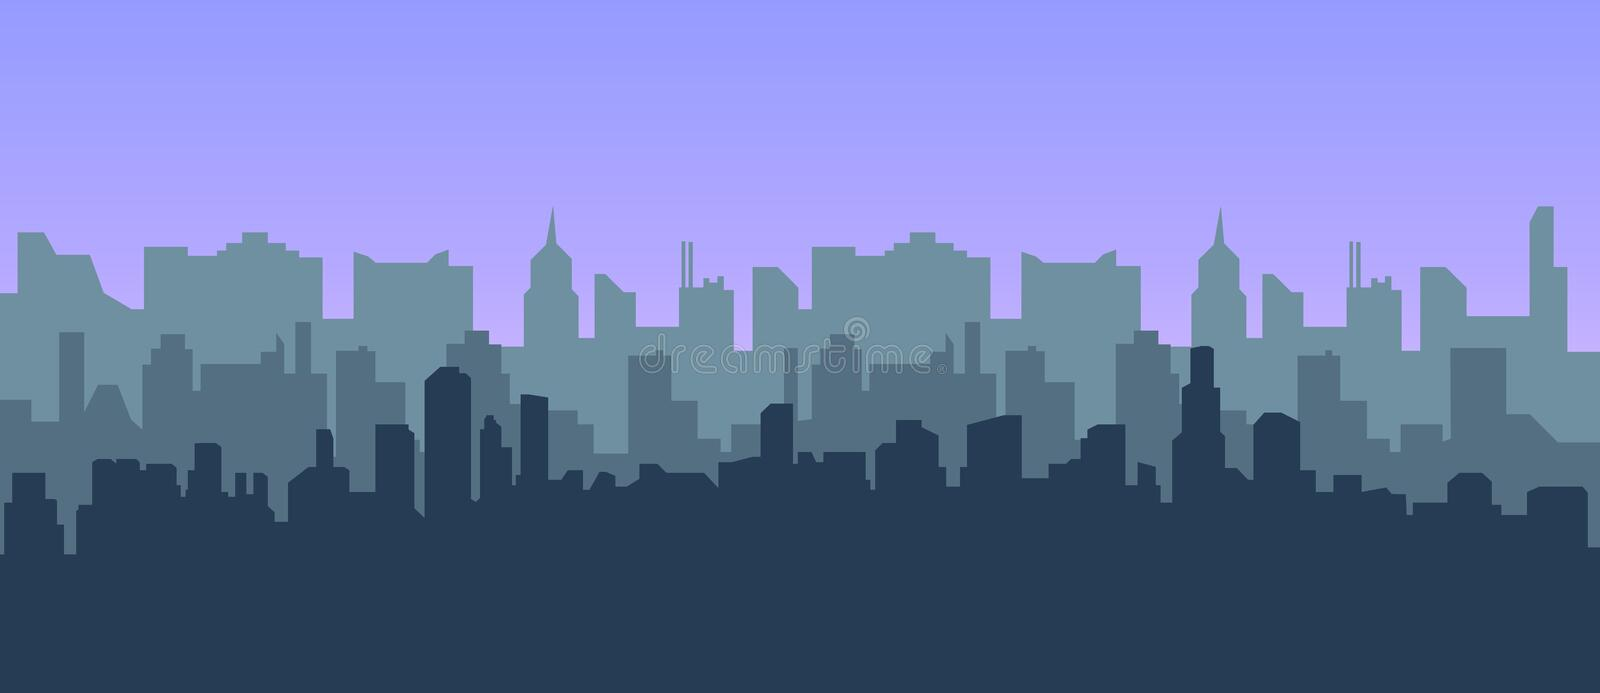 Modern city landscape vector background for web design. City skyline illustration. Horizontal Urban landscape. royalty free illustration